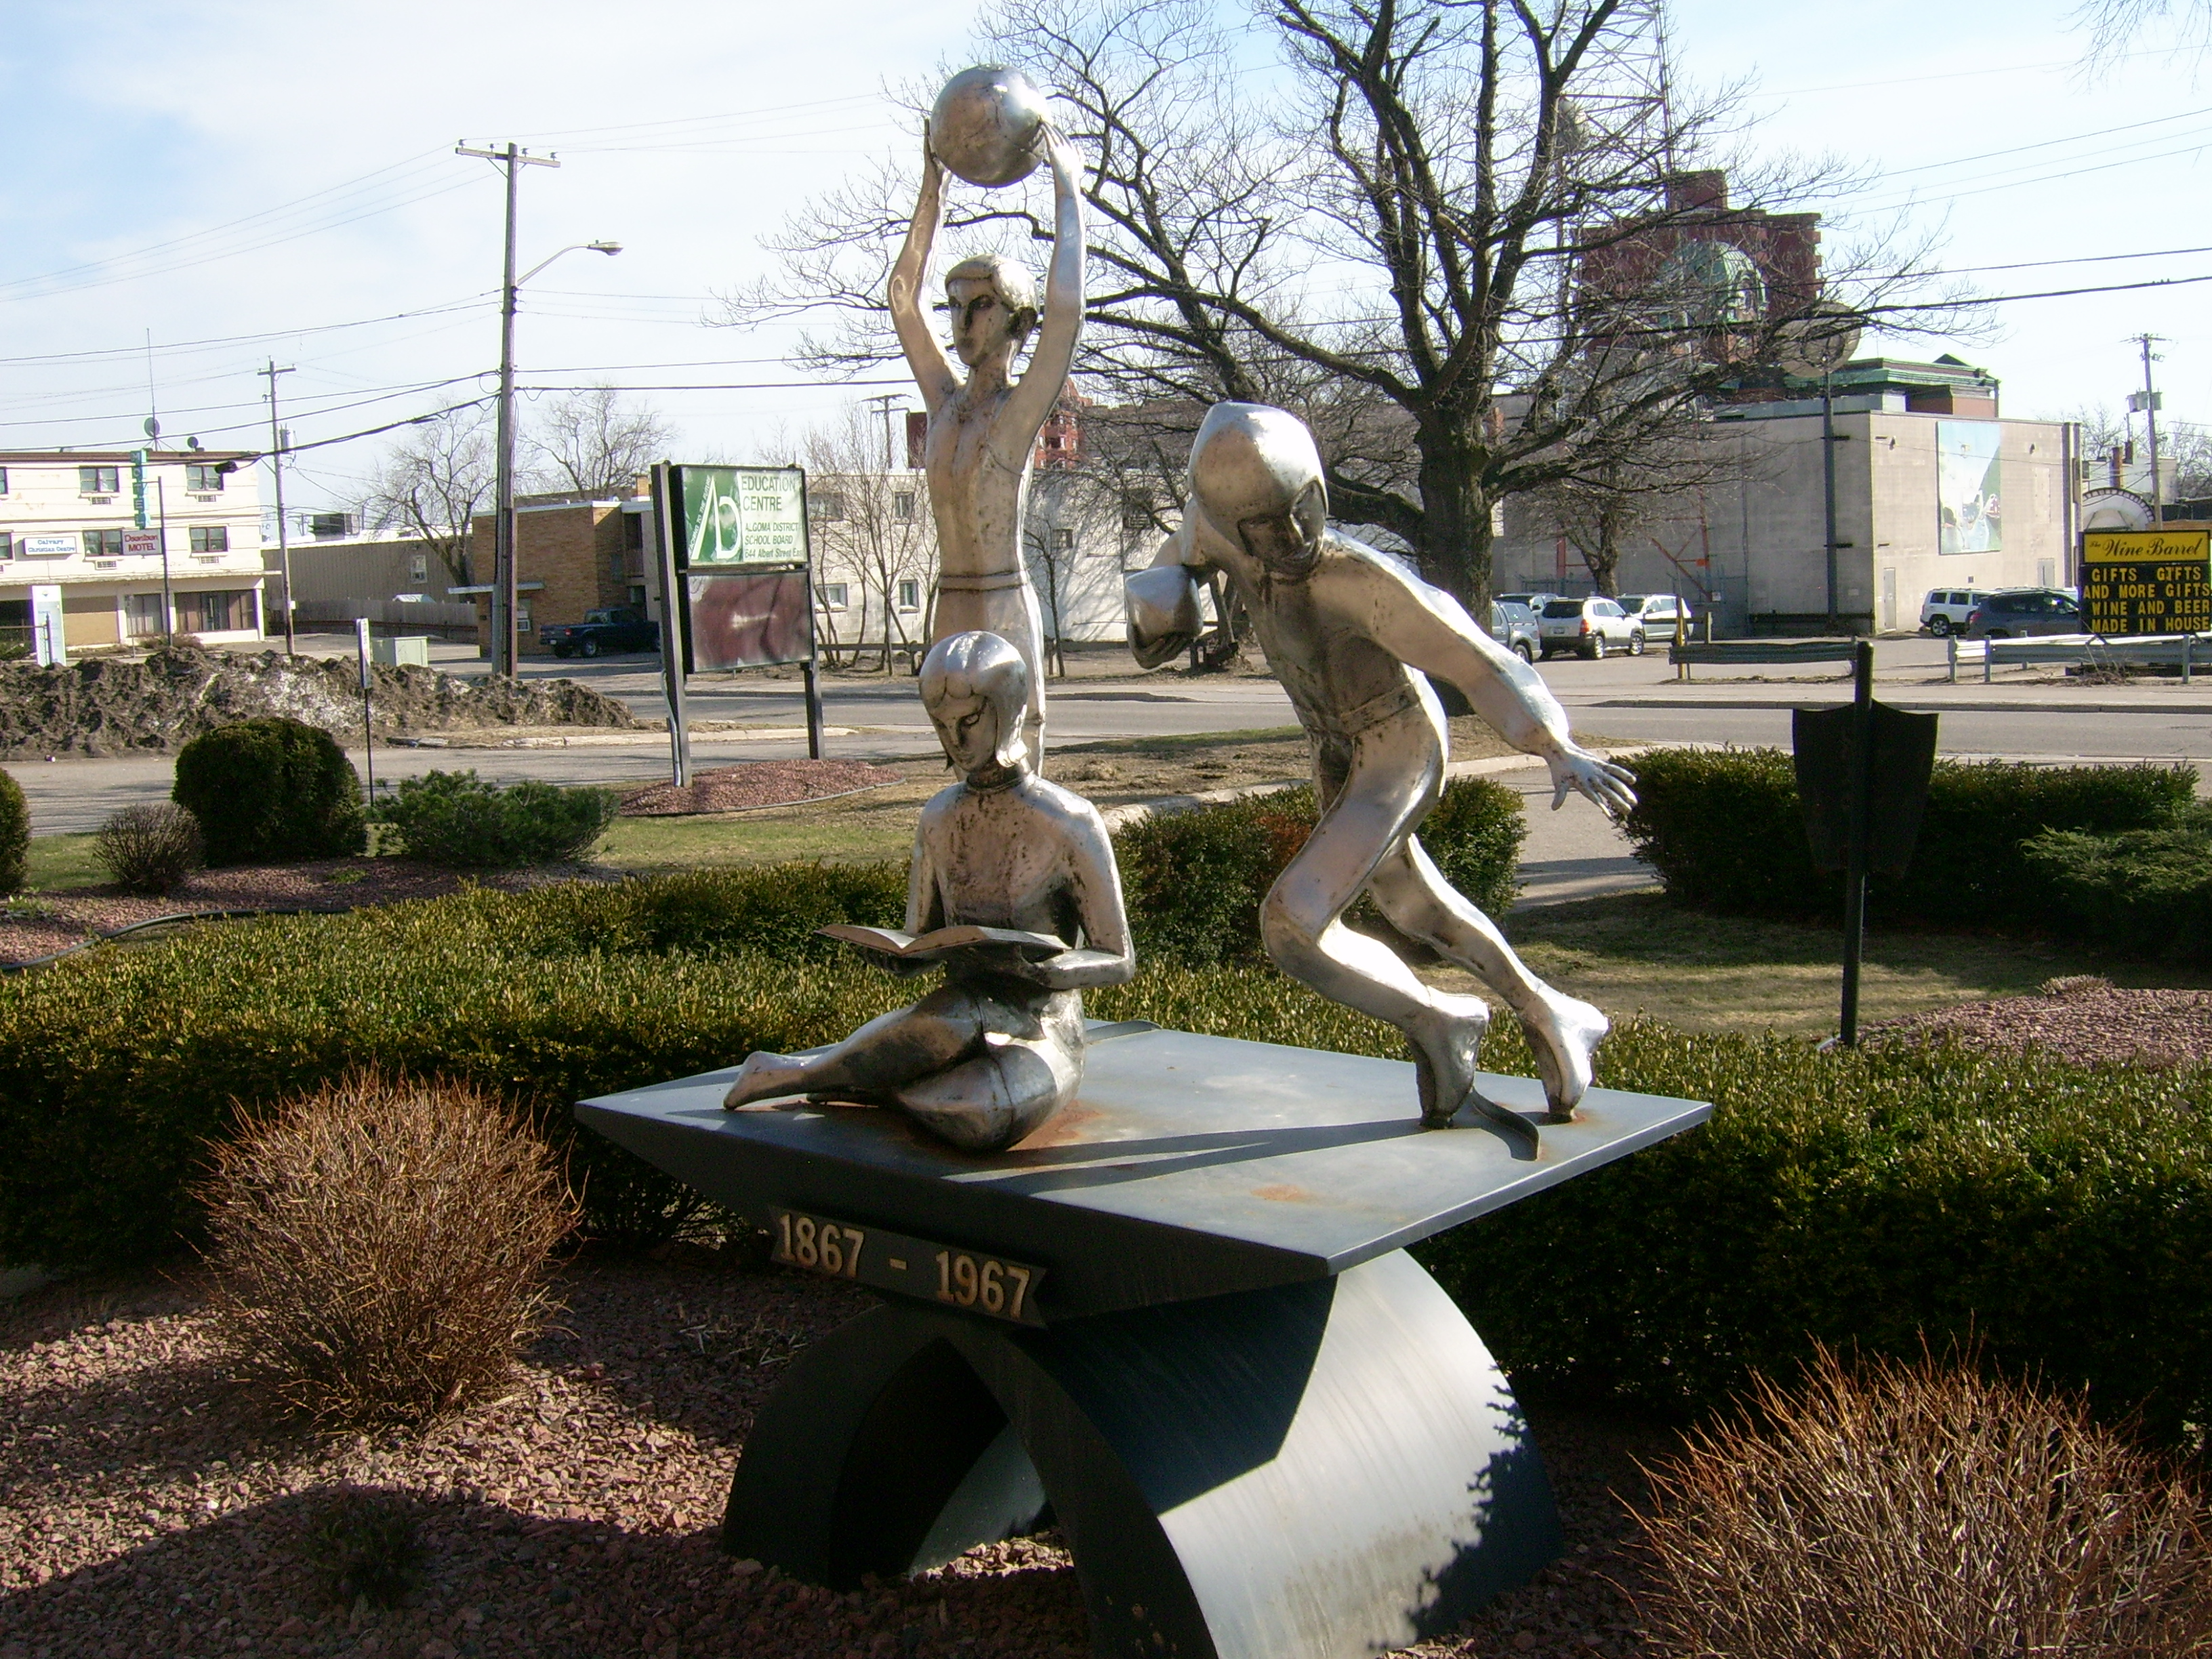 FileAlgoma District School Board SculptureJPG Wikimedia Commons - 10 things to see and do in the algoma district